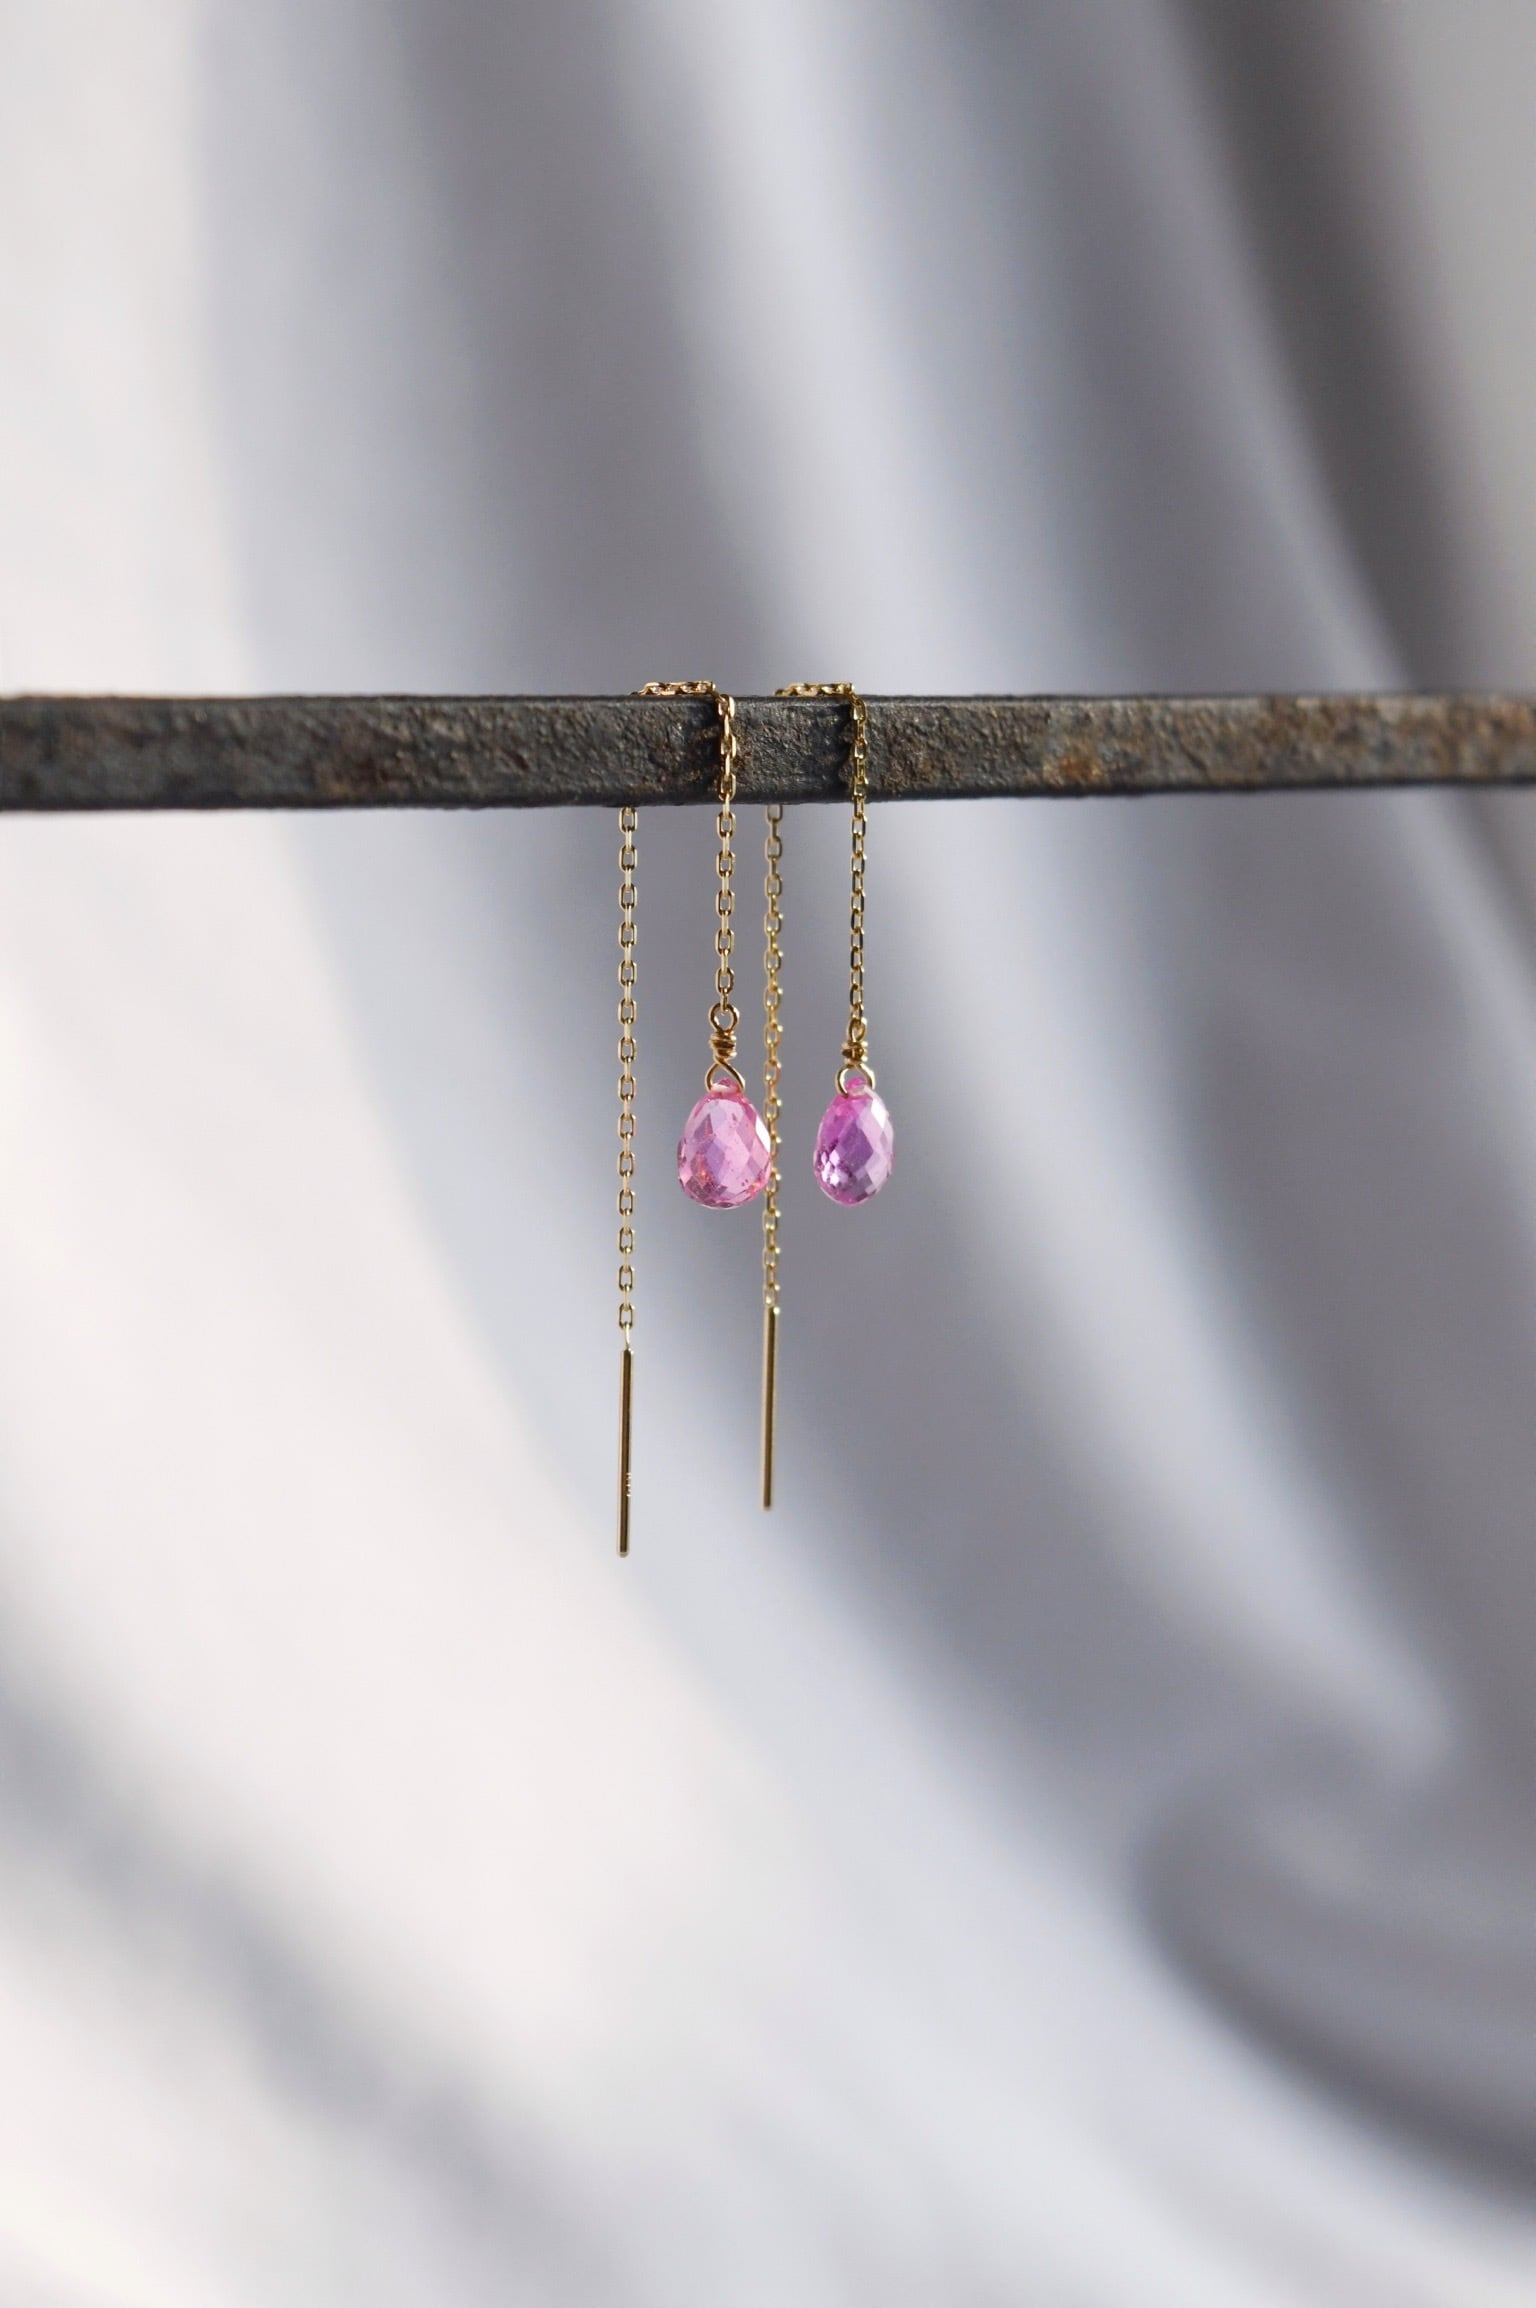 K18 Pink Sapphire Long chain Earrings 18金ピンクサファイアロングチェーンピアス/イヤリング